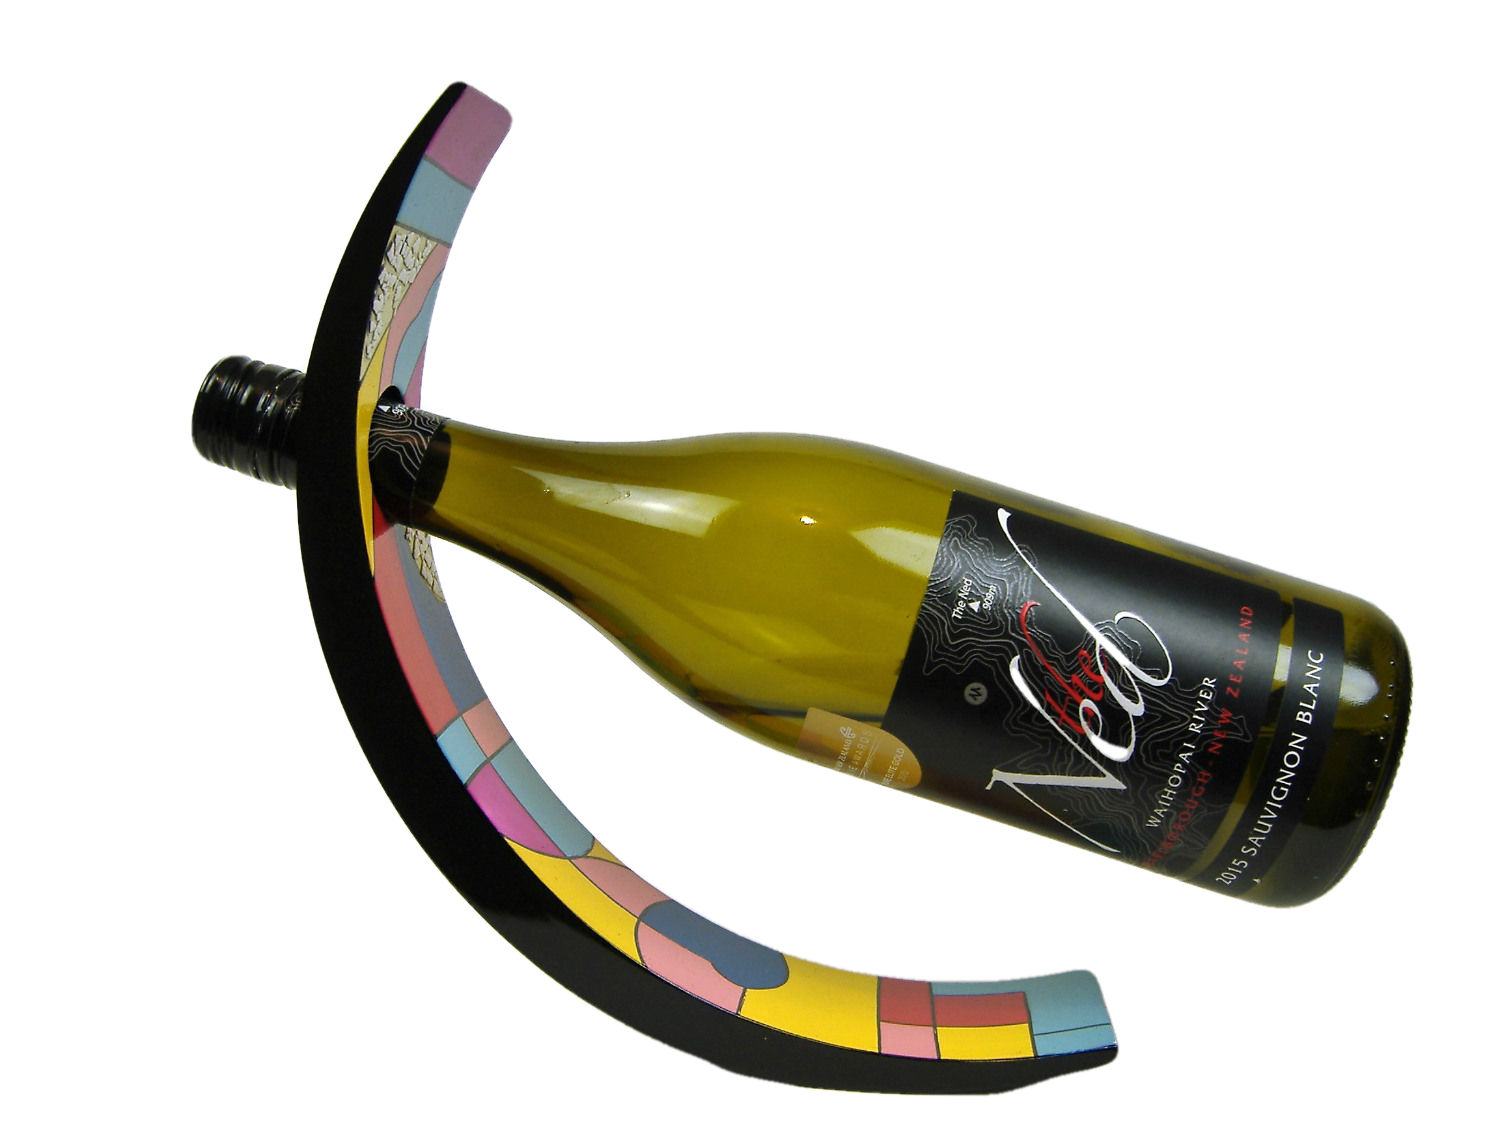 Picasso wooden lacquer wine holder